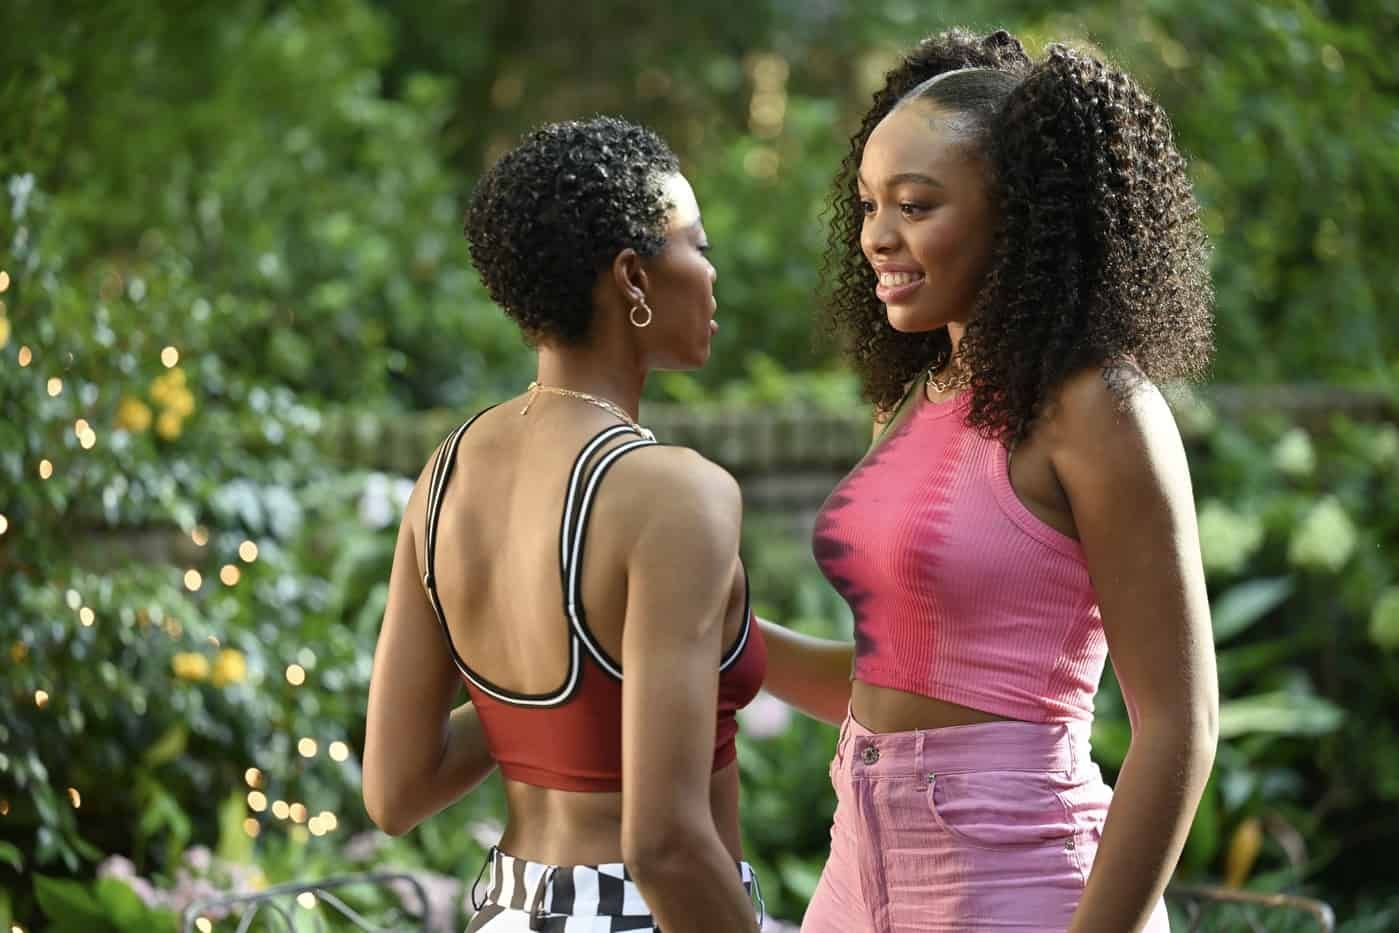 OUR KIND OF PEOPLE Season 1 Episode 4: L-R: Guest star Nicole Chanel Williams and Alana Bright in the ìCrabs in a Gold-Plated Barrelì episode of OUR KIND OF PEOPLE airing Tuesday, Oct. 12 (9:00-10:00 PM ET/PT) on FOX. ©2021 FOX MEDIA LLC. Cr: Brownie Harris/FOX.